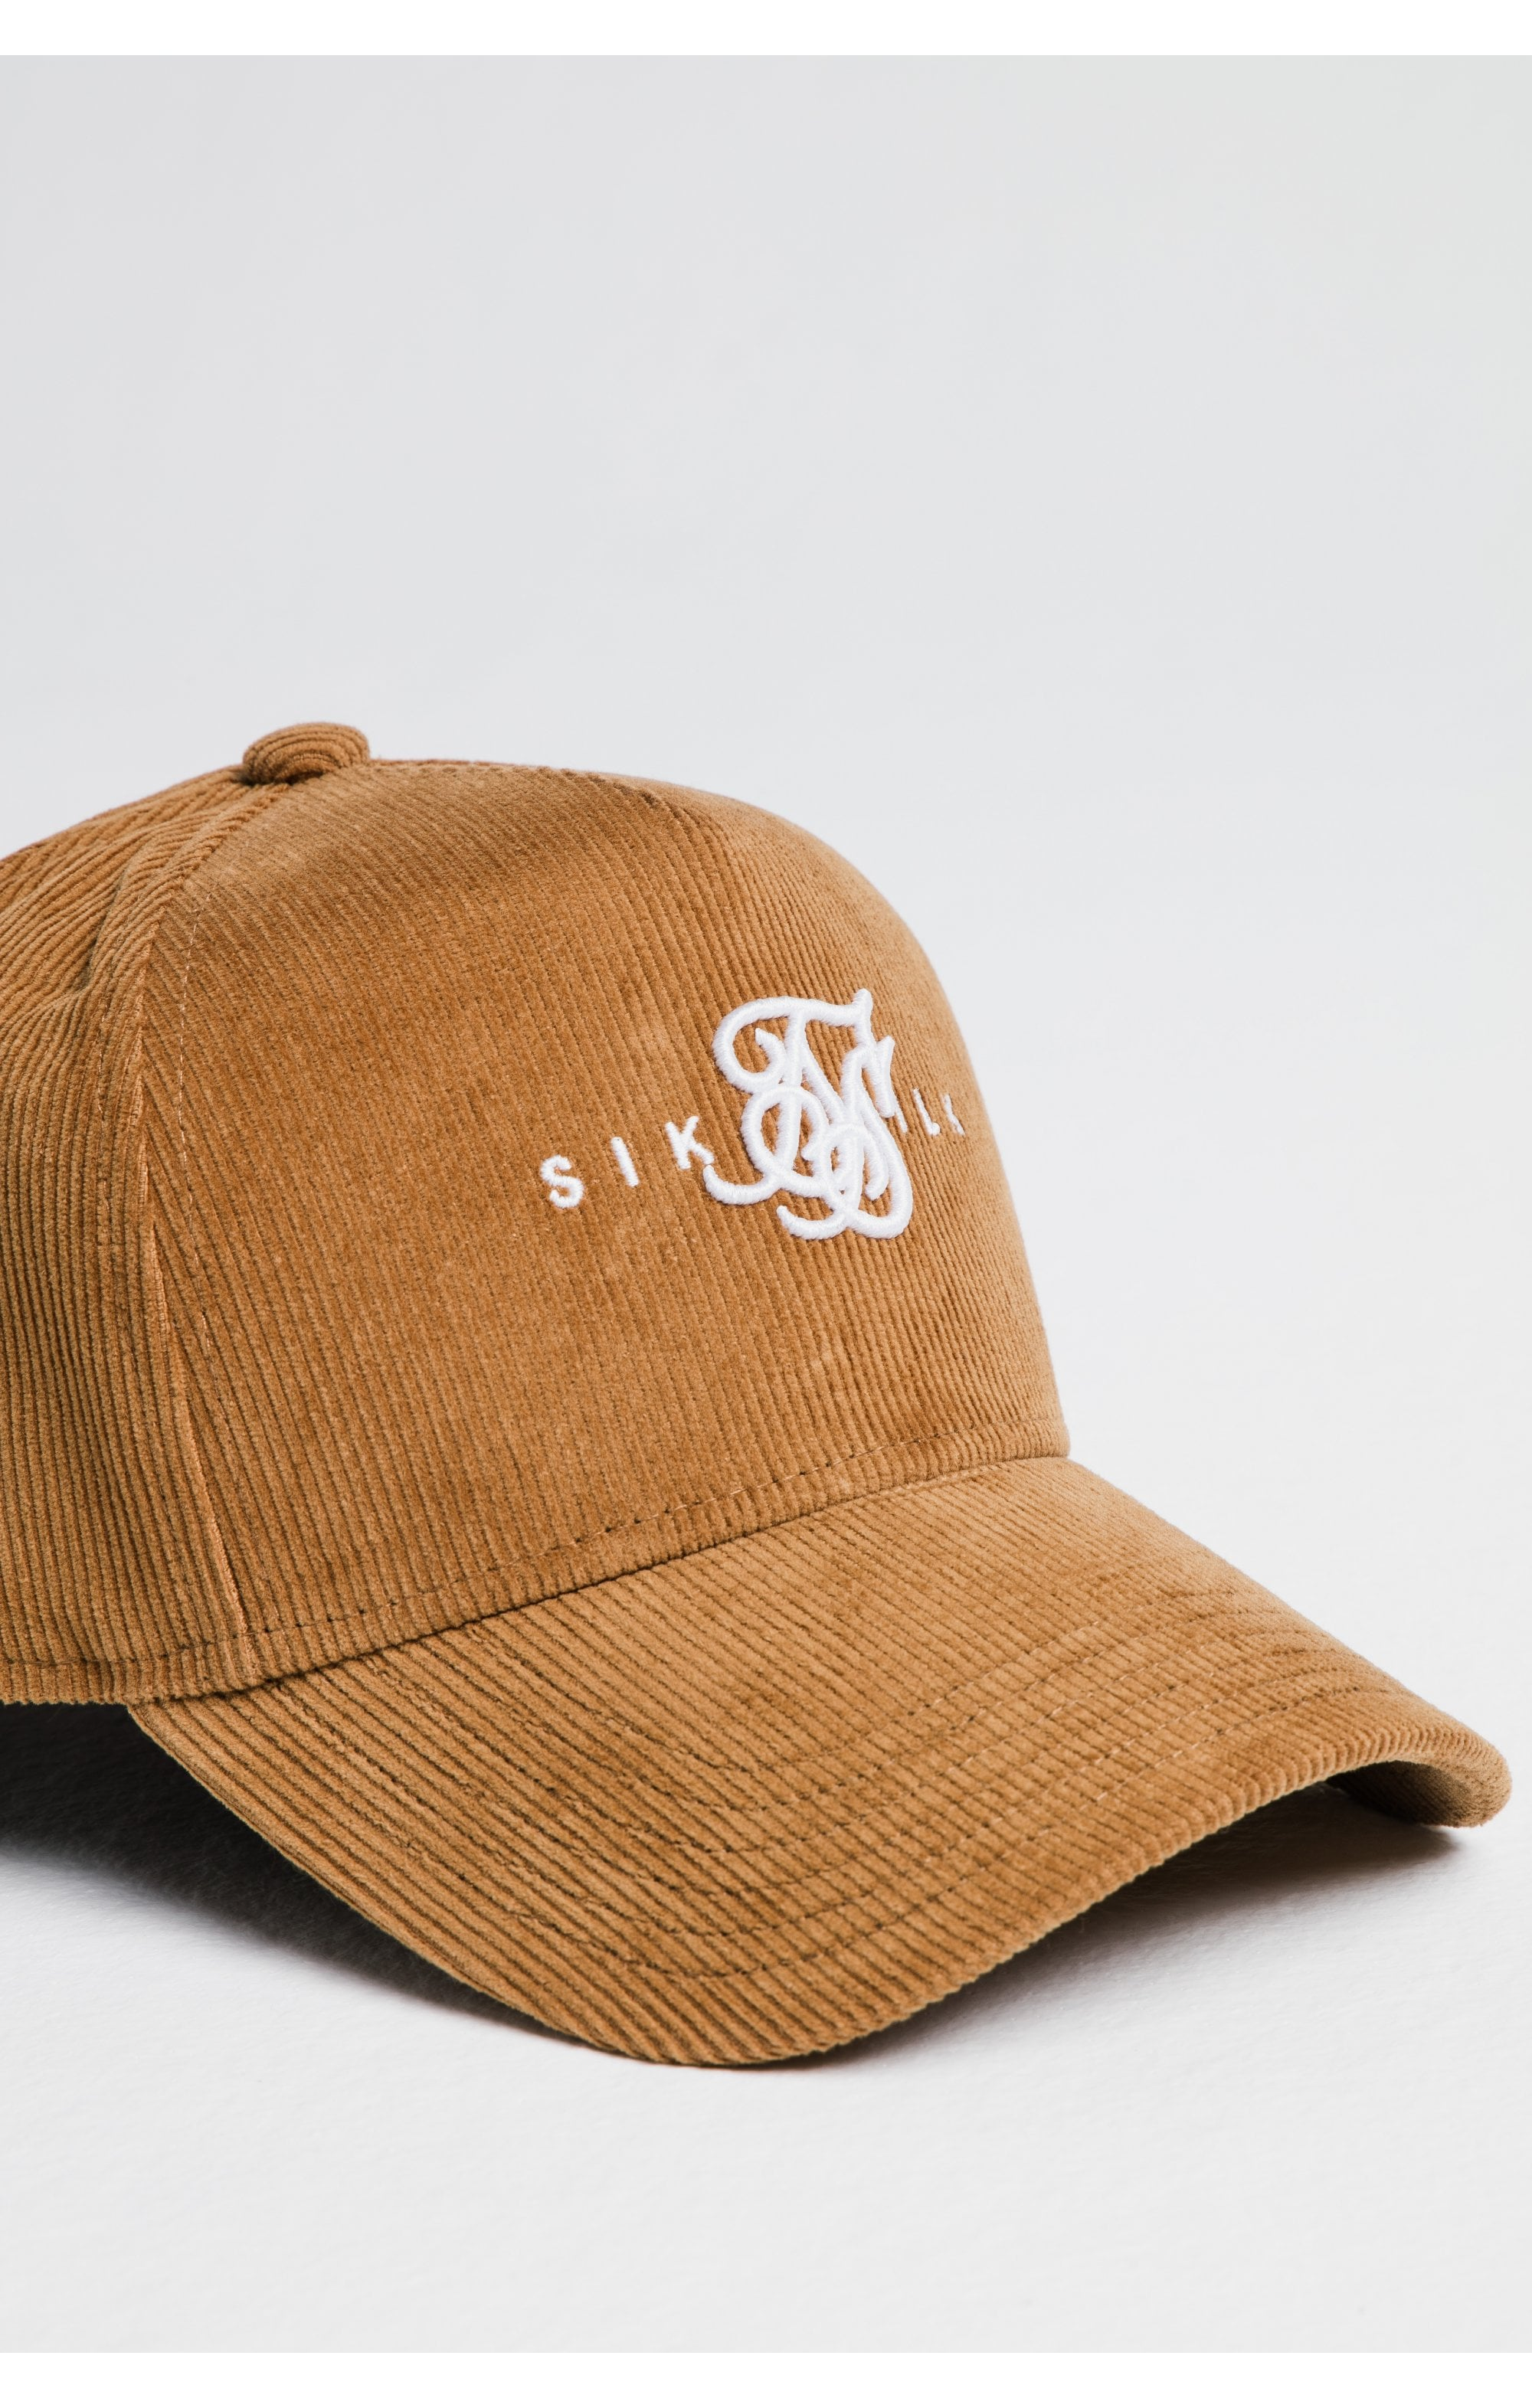 Load image into Gallery viewer, SikSilk Full Cord Trucker - Mustard (1)